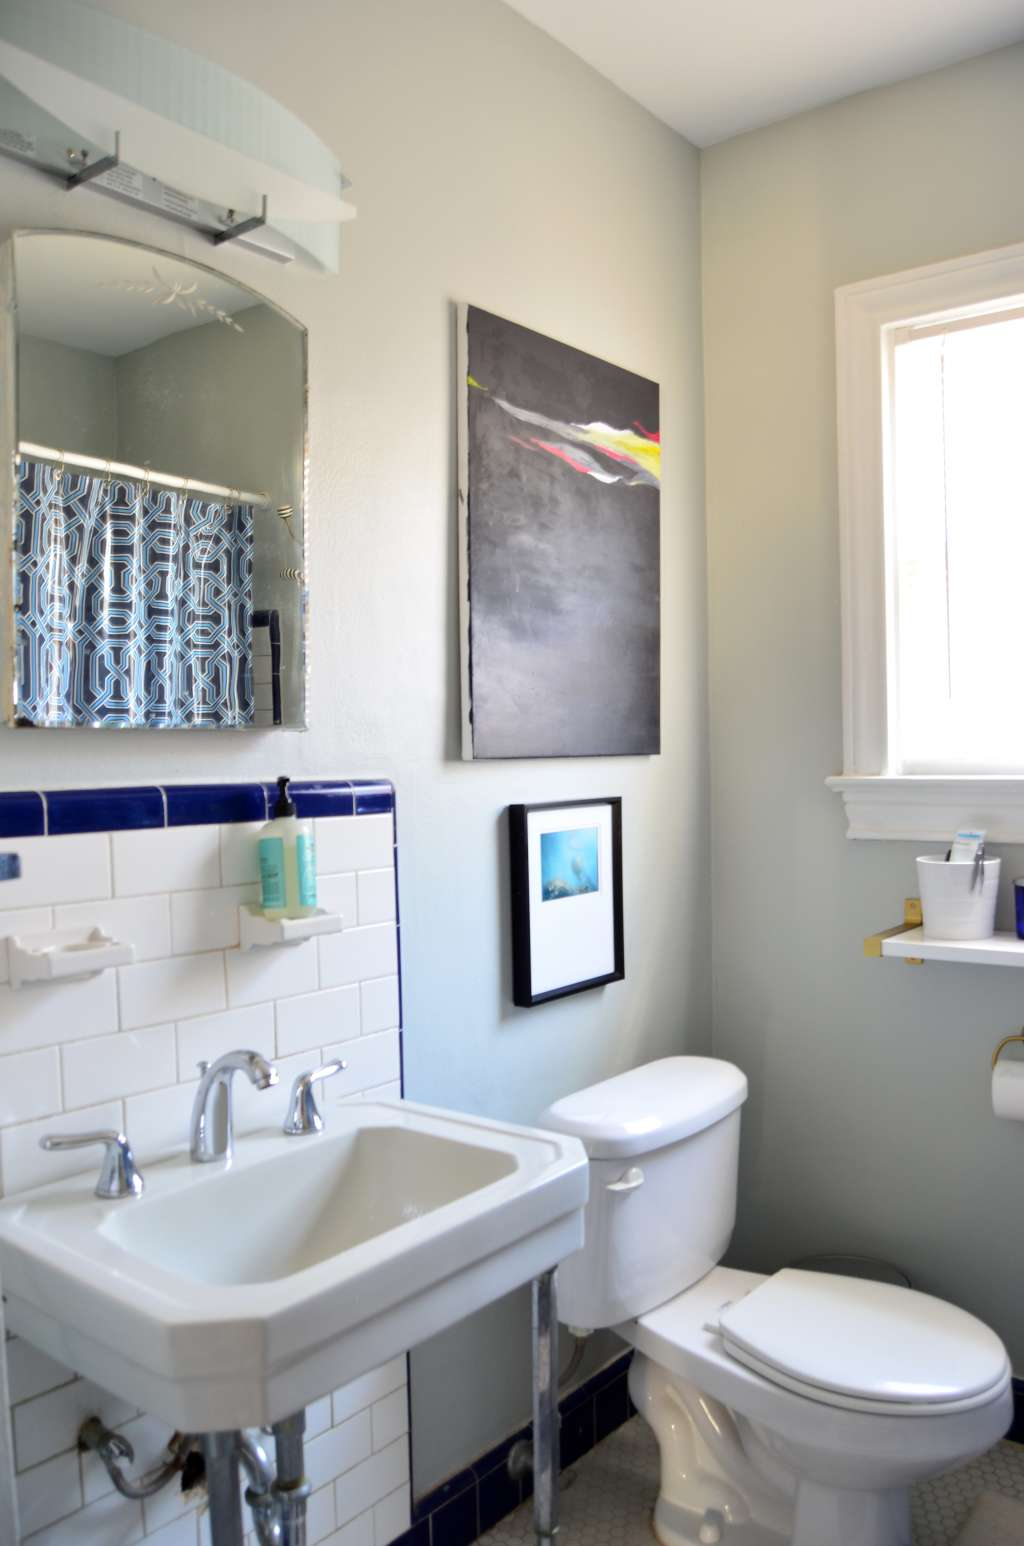 The Ten Minute Bathroom Clutter Cleanout